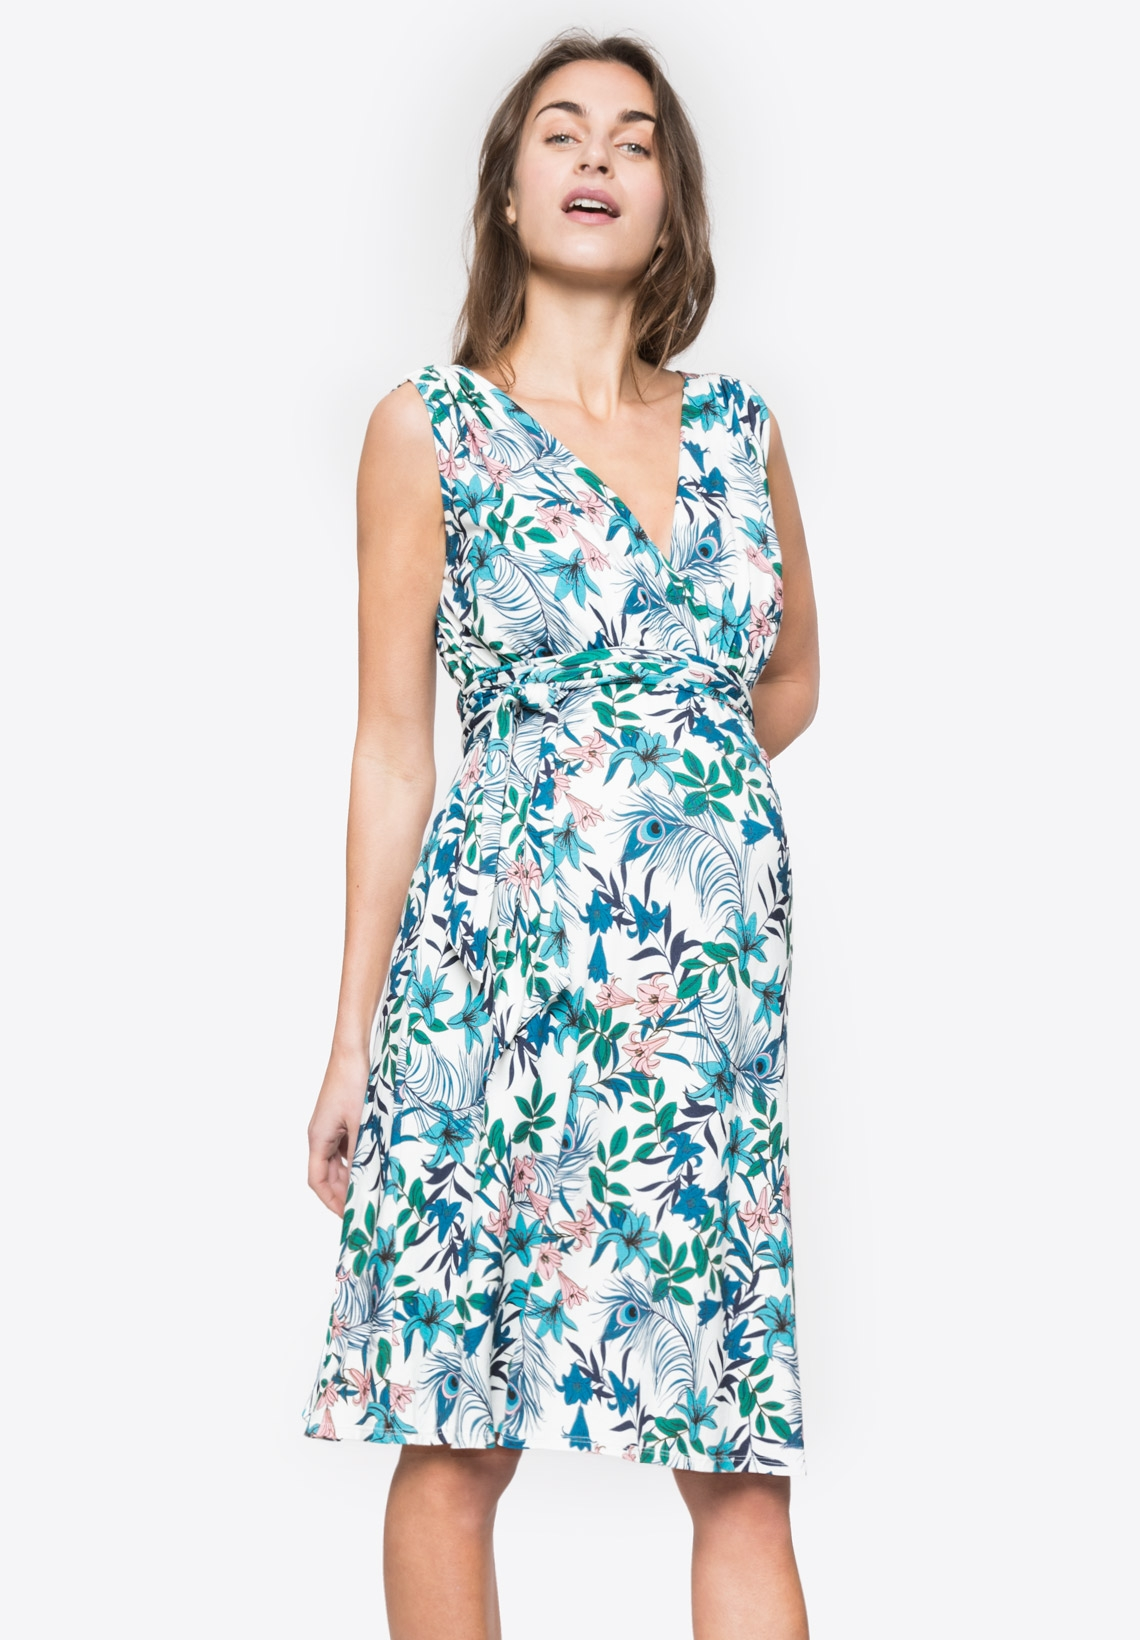 Maternity dress - ROMIA TANK